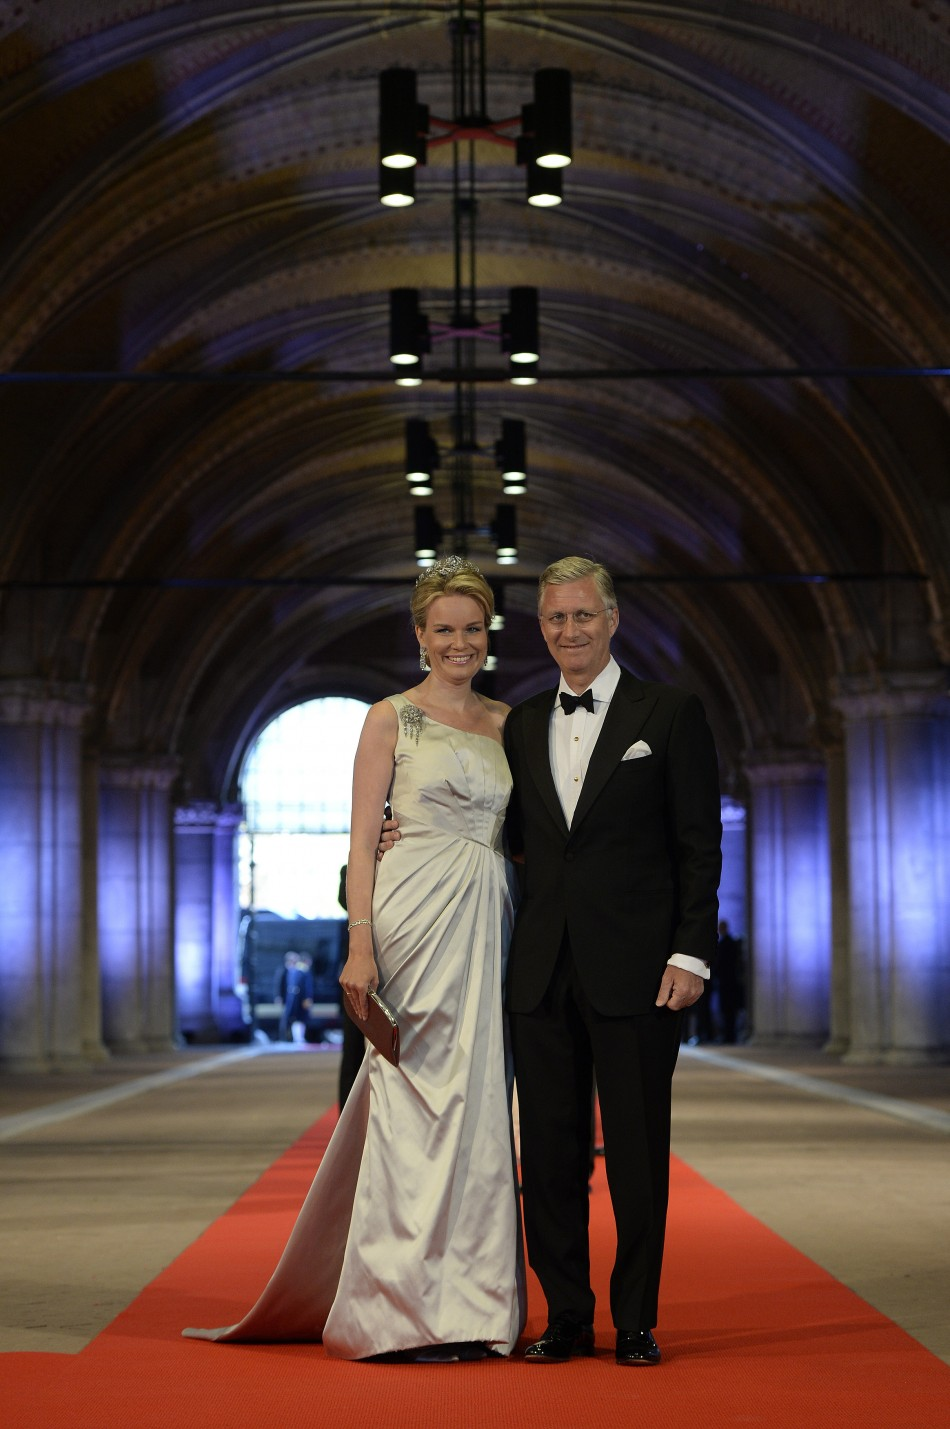 Belgian Crown Prince Philippe R and his wife Crown Princess Mathilde arrive at a gala dinner organised on the eve of the abdication of Queen Beatrix of the Netherlands and the inauguration of her successor King Willem-Alexander at the Rijksmuseum in Ams